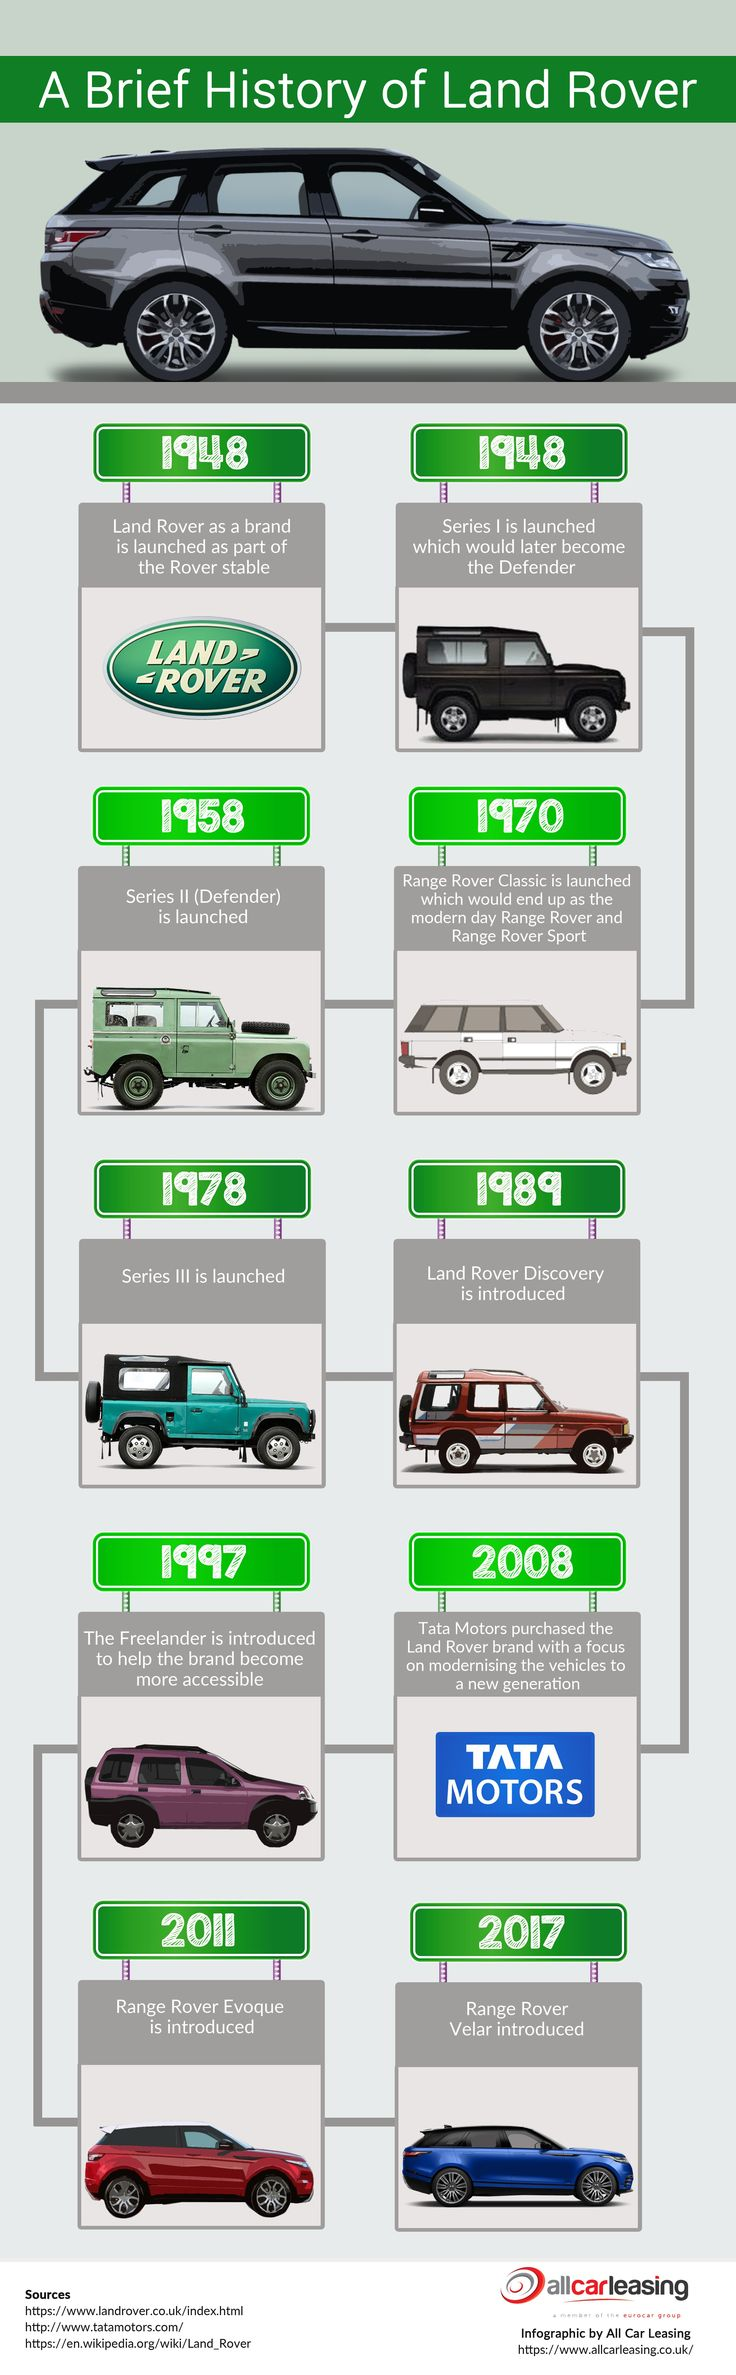 Here's an infographic I found made by All Car Leasing on a brief history of the Land Rover brand. Check it out! Visit: https://www.allcarleasing.co.uk/car-leasing/land-rover